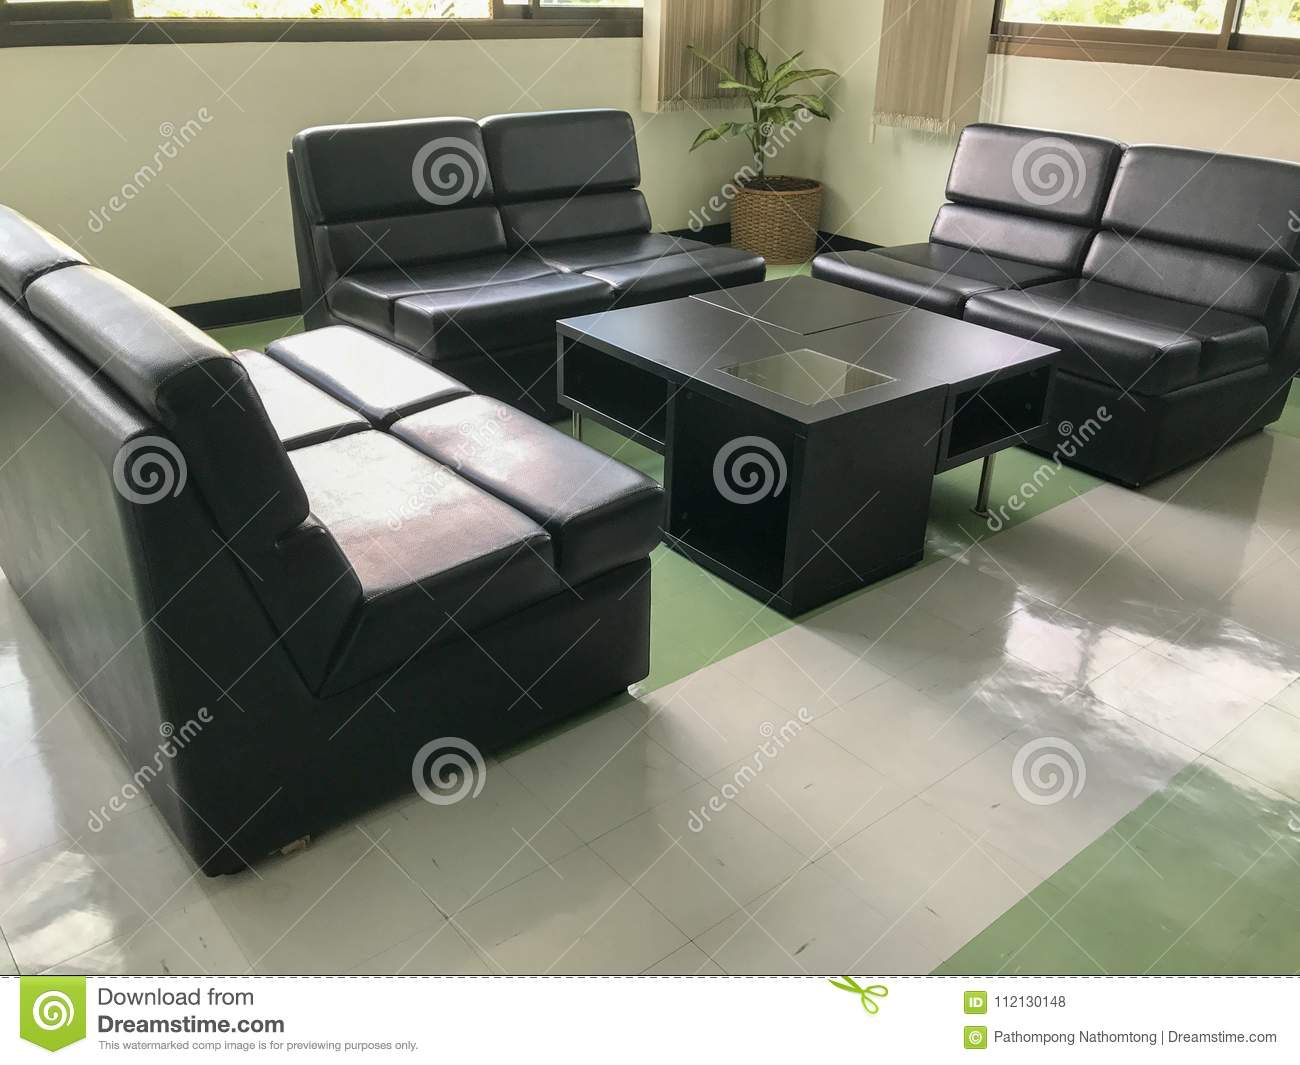 Dinner Sofa Black Sofa And Table Set Stock Photo Image Of Dinner 112130148